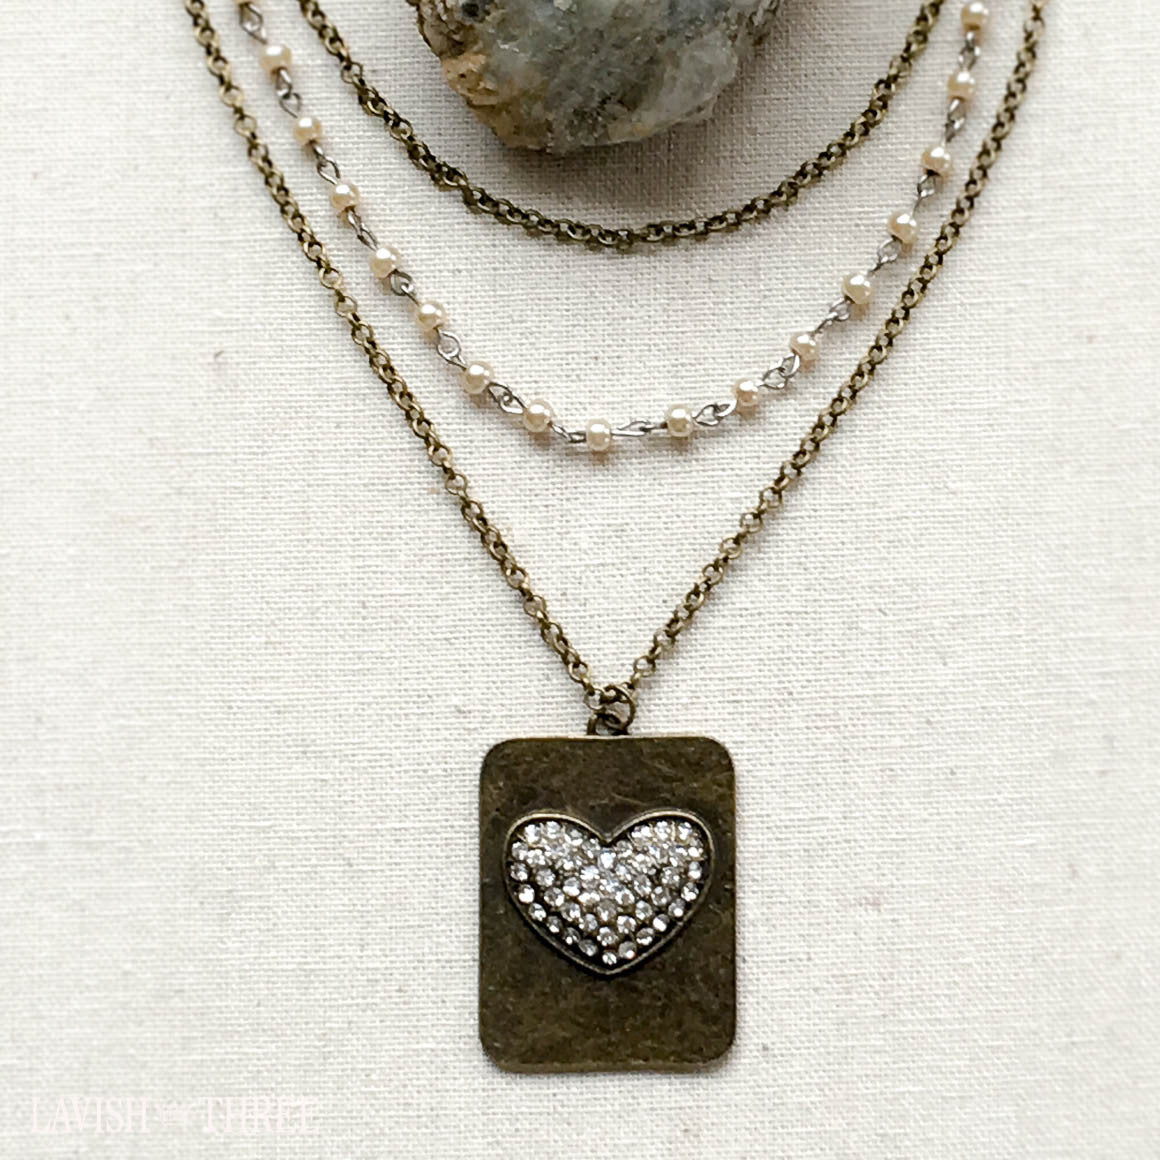 triple strand antique gold and pearl necklace, dog tag heart pendant, Lavish Three